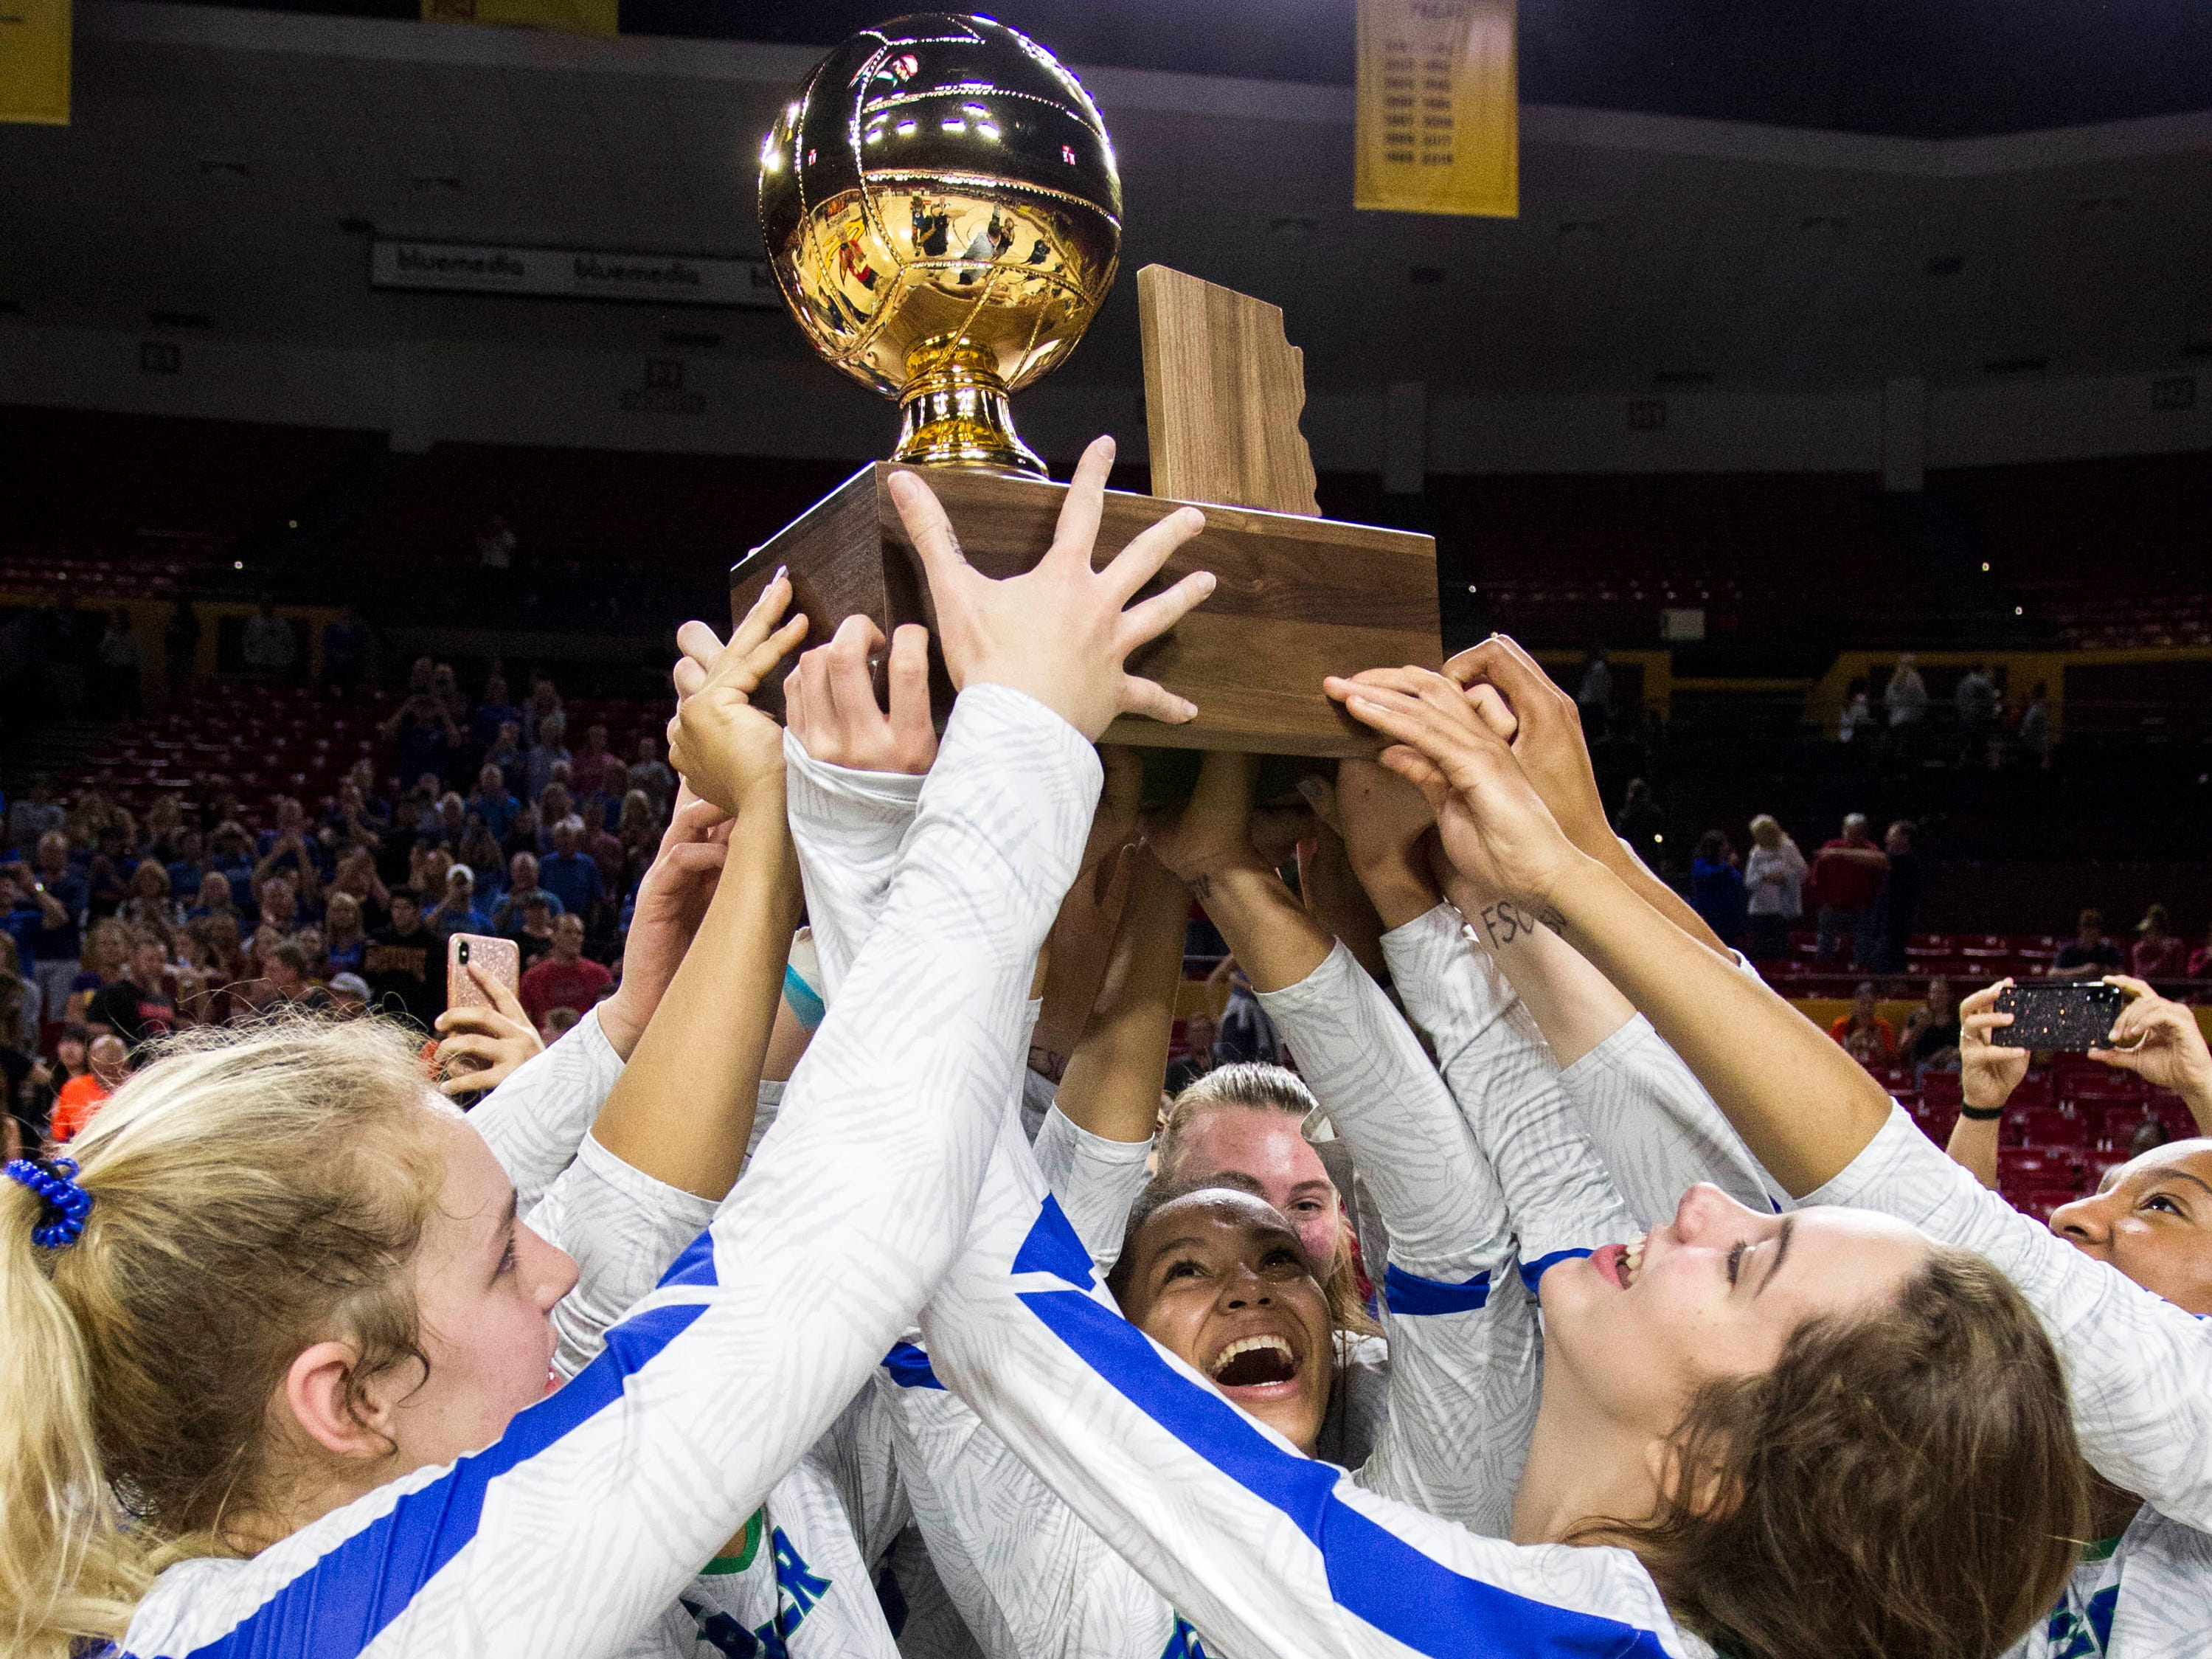 Xavier players host the 6A volleyball trophy in the air after their three set win over Corona del Sol in the volleyball state championship at Wells Fargo Arena in Tempe, Wednesday, Nov. 7, 2018.